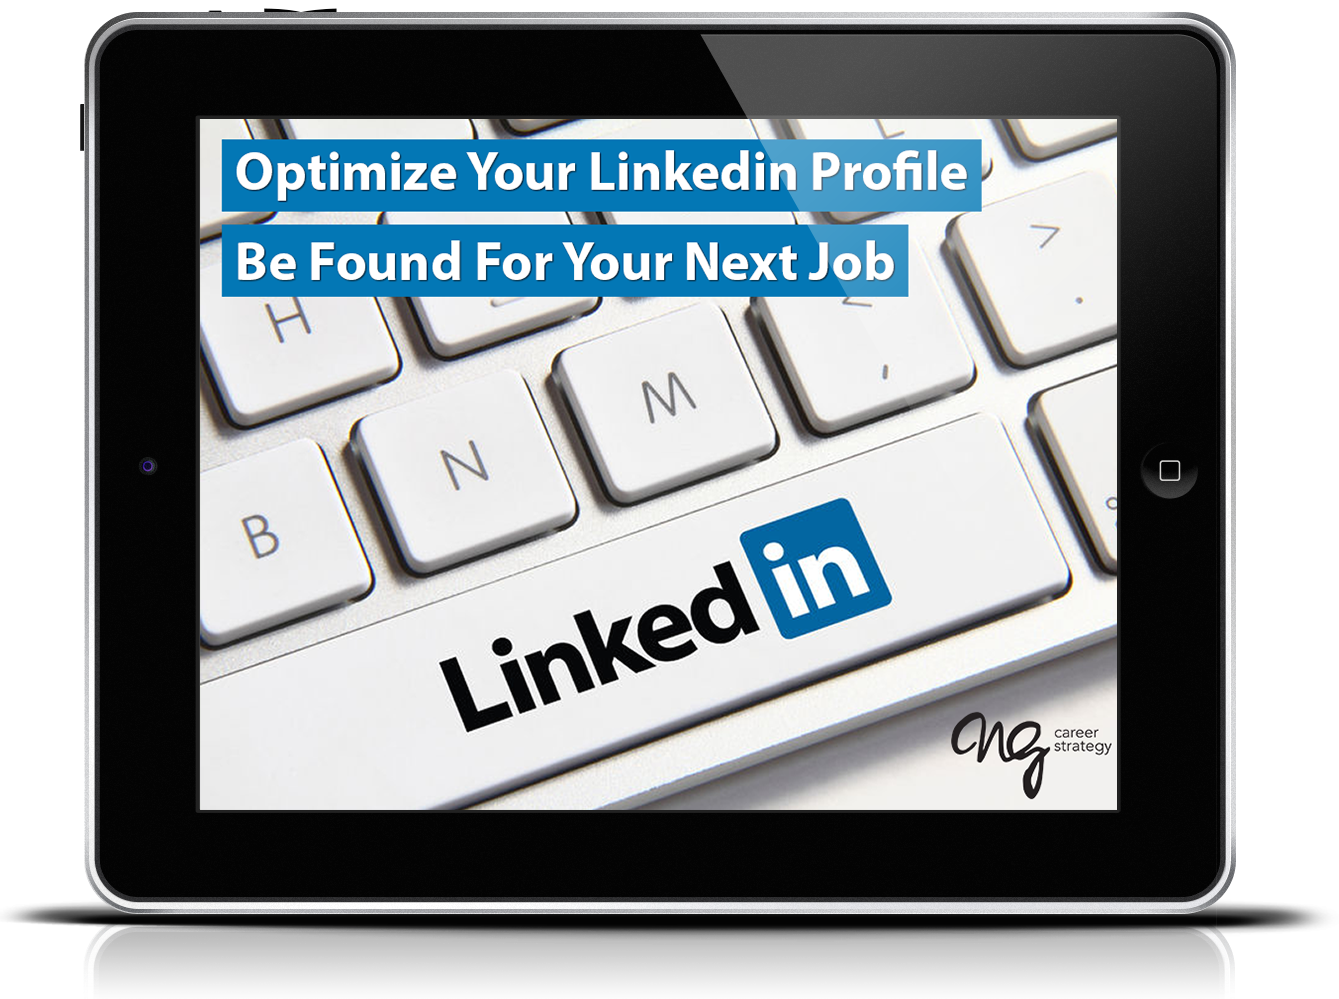 Linkedin Profile Optimization Online Course | NG Career Strategy